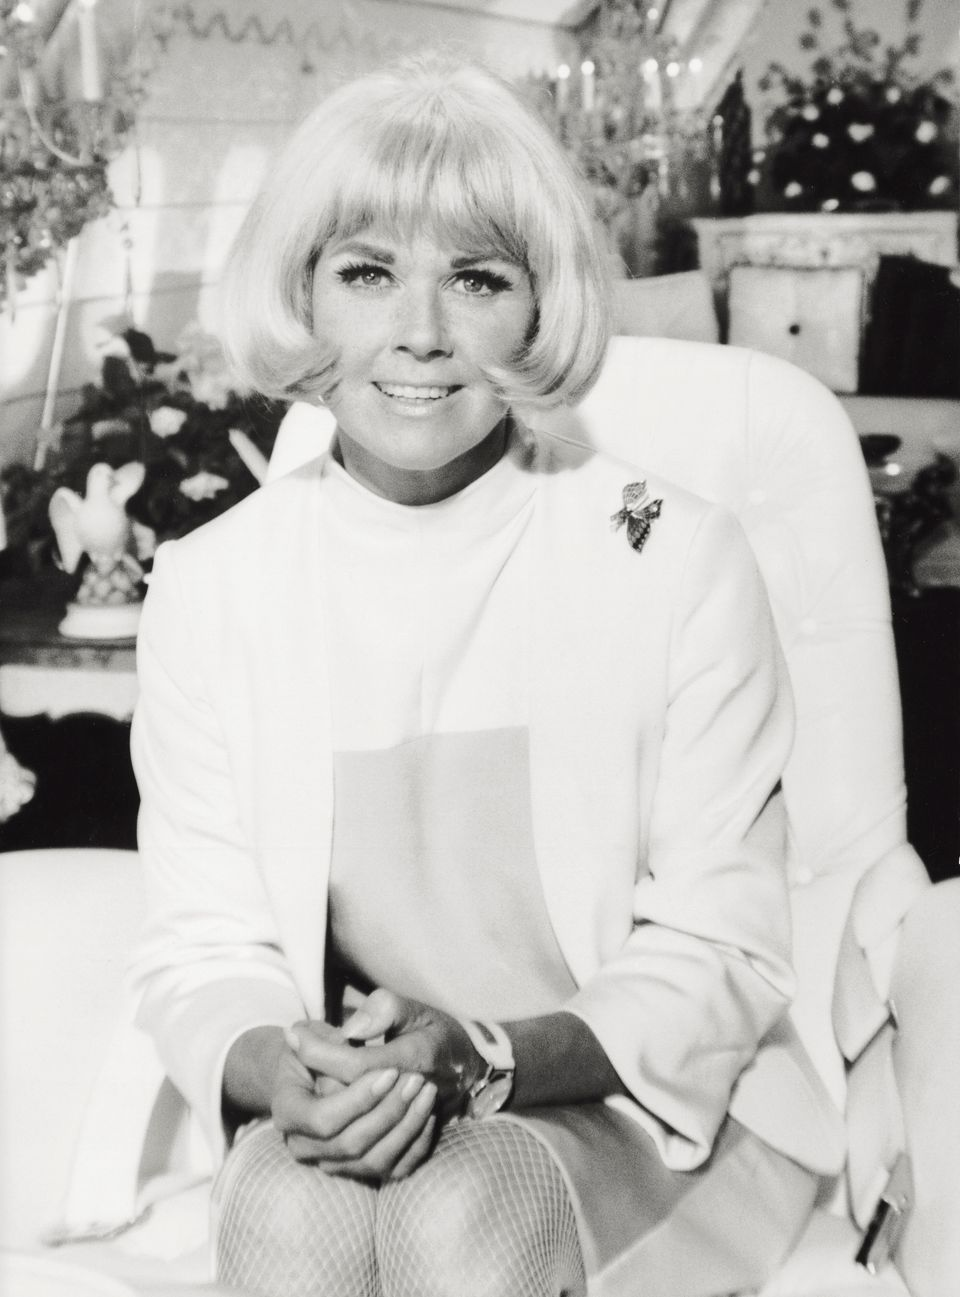 Westlake Legal Group 5cd97e752100003500d0664d A Look Back At Doris Day's Life And Career In Photos